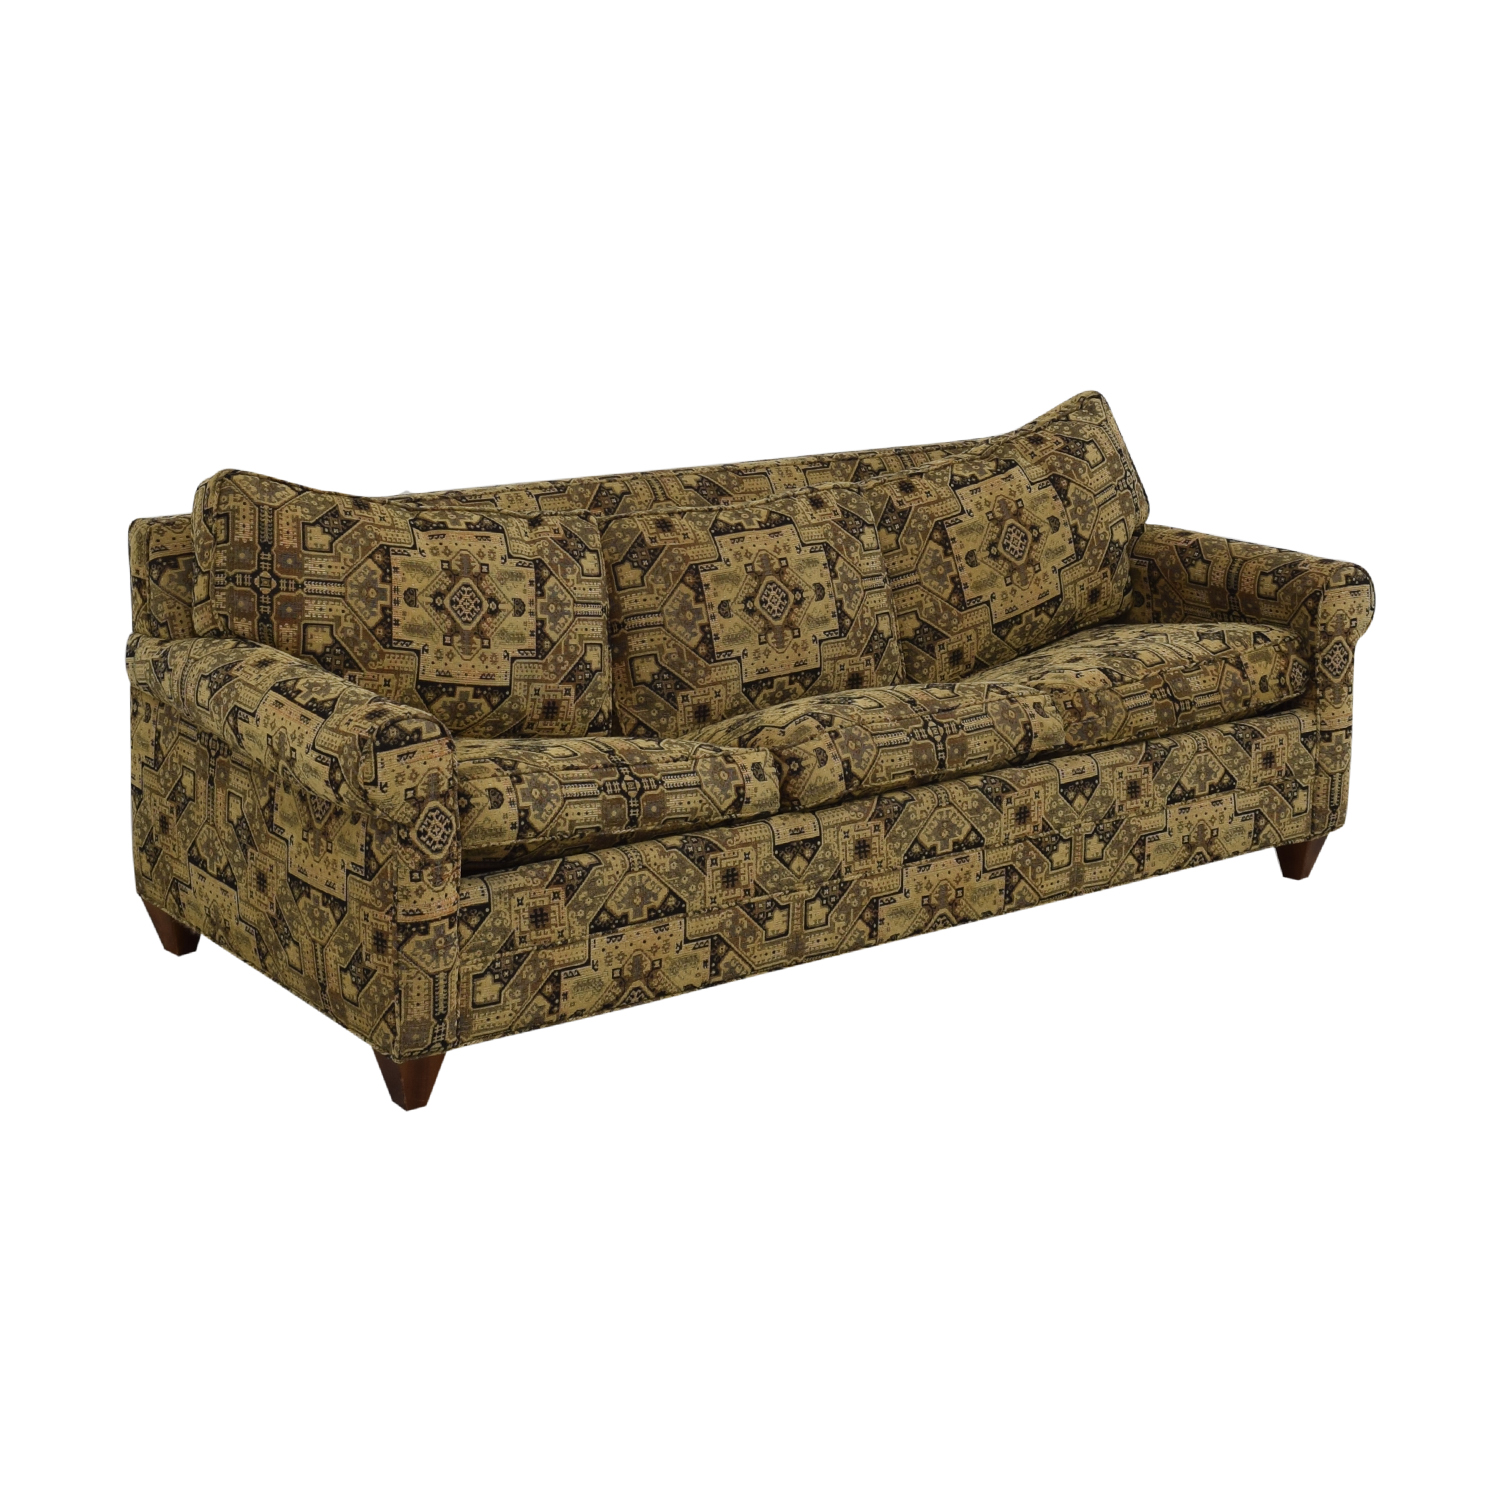 Carlyle Carlyle Queen Sleeper Sofa discount